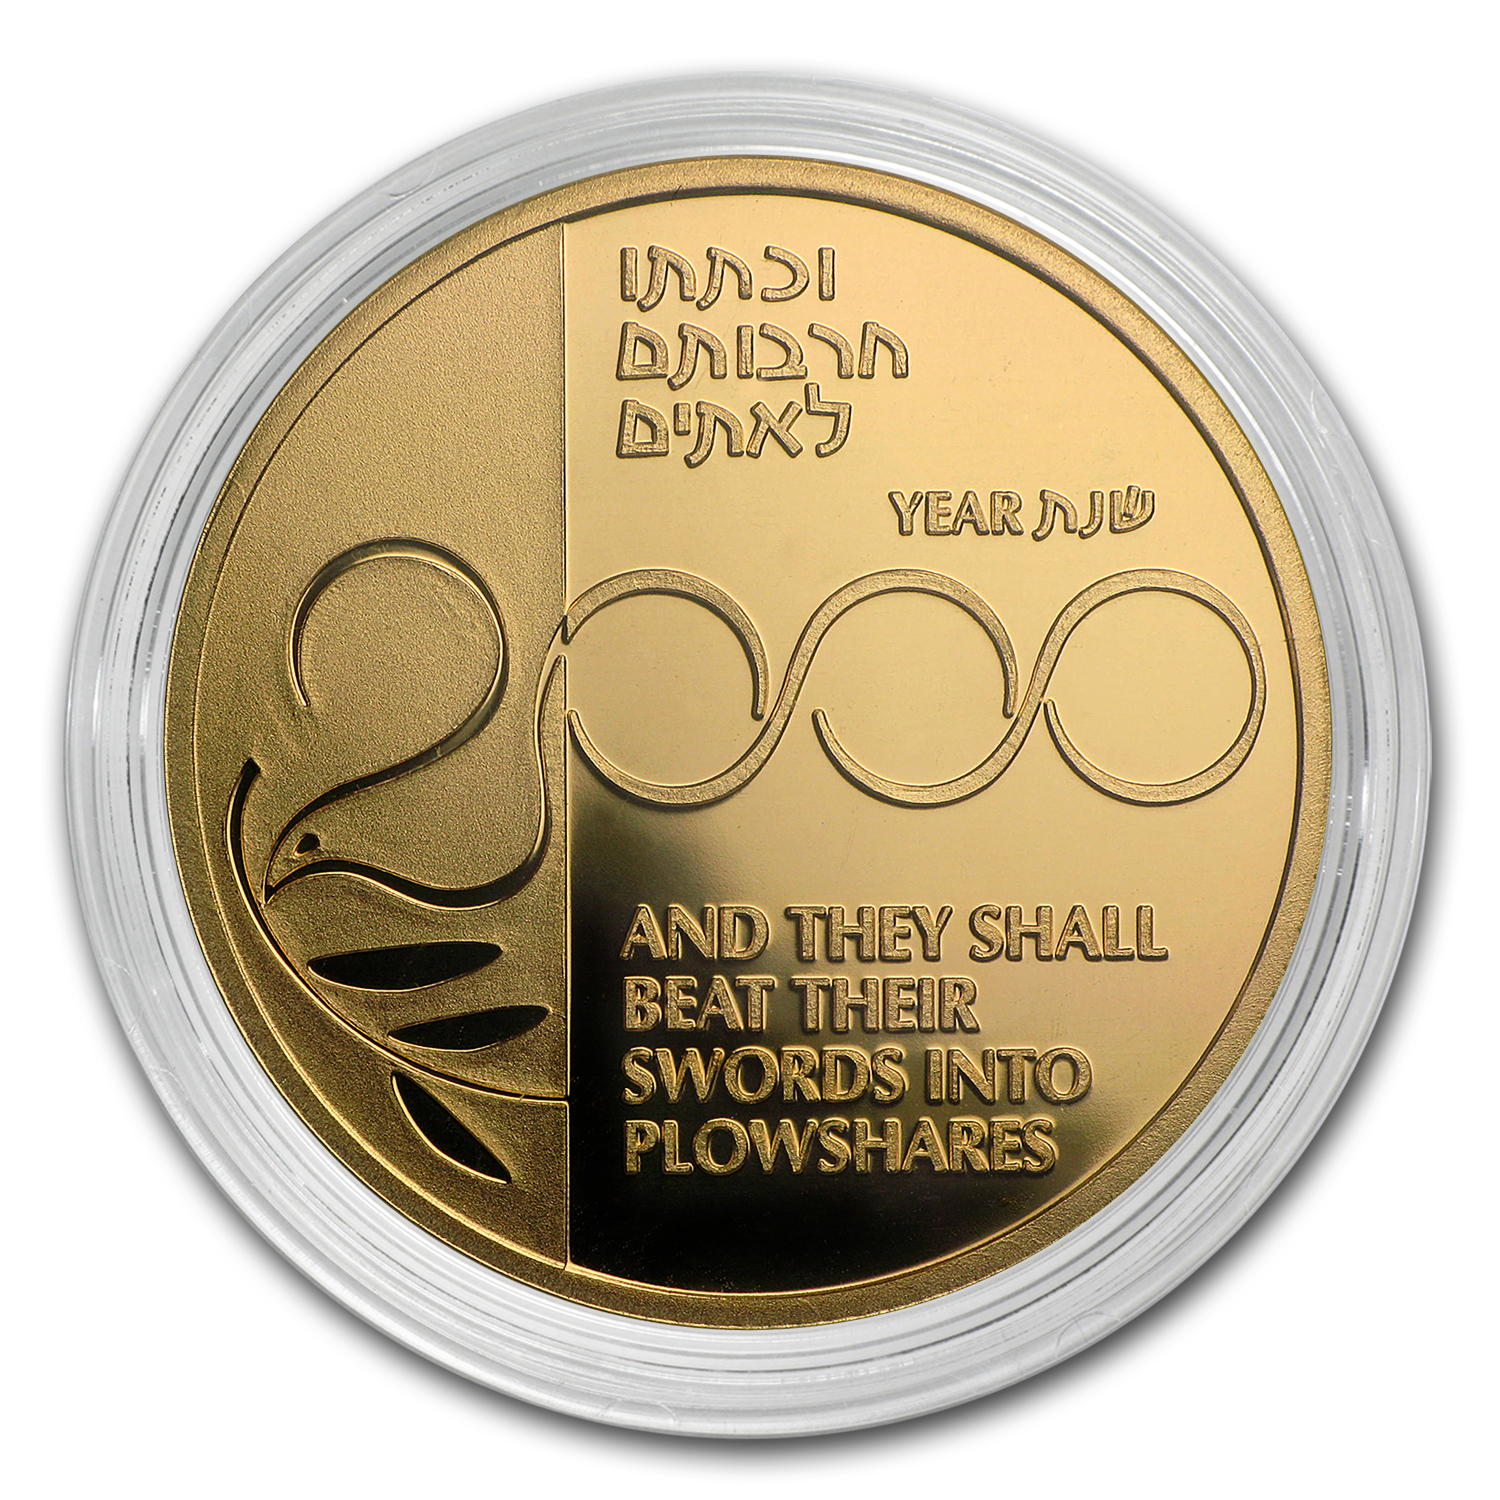 1999 Israel Proof Gold 10 Sheqalim 2000 Millennium Coin